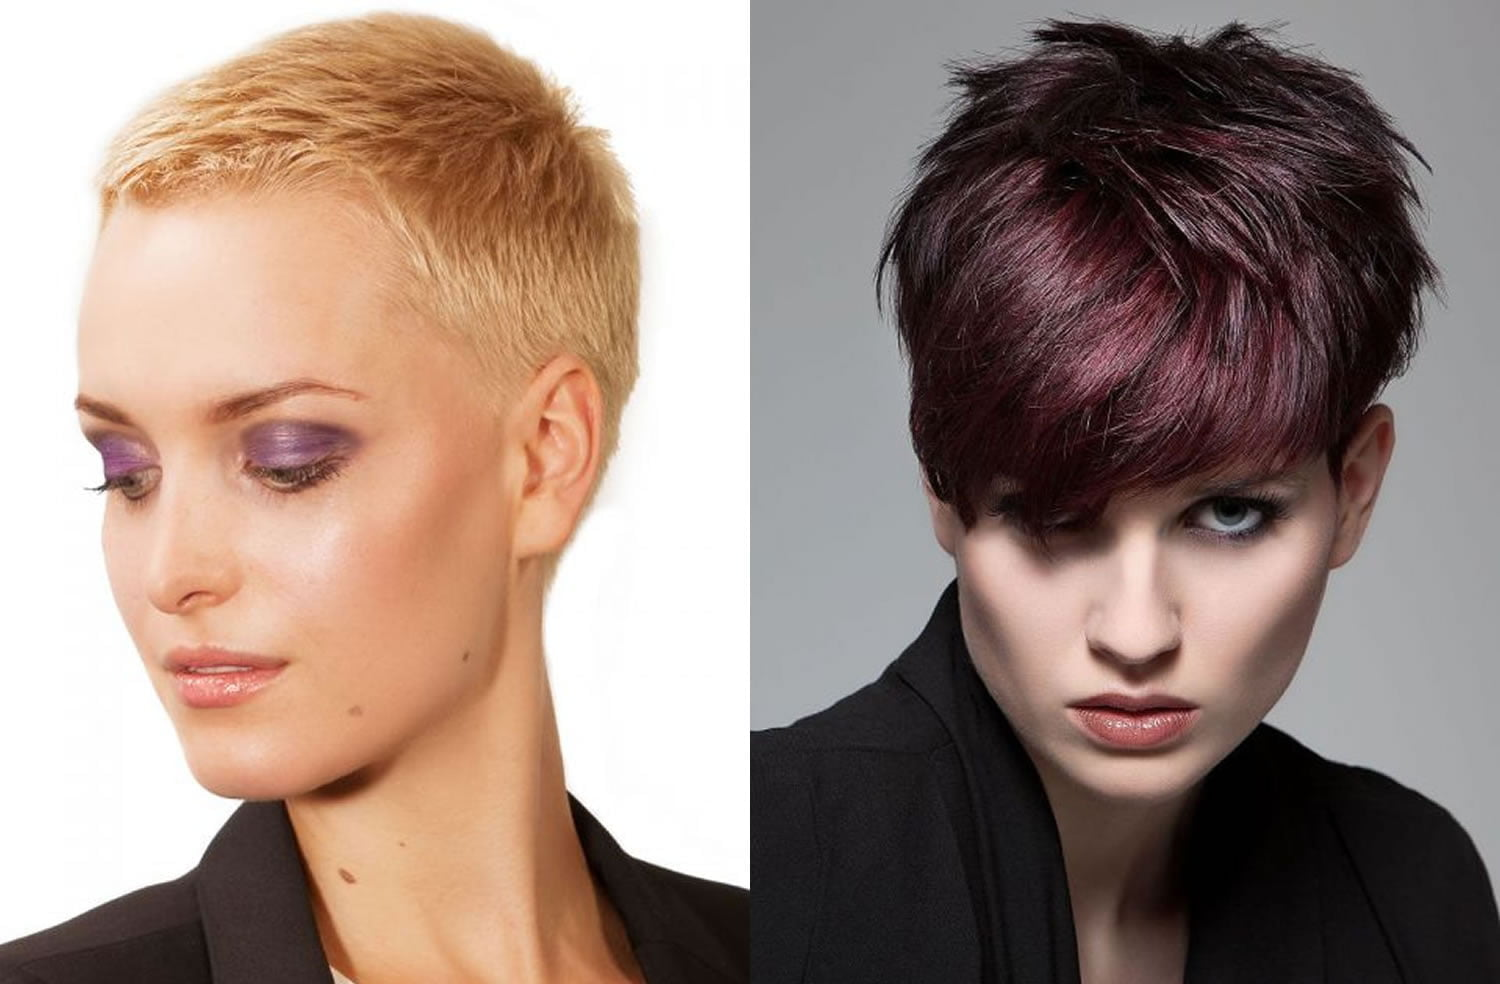 Hairstyles 2019: Ultra Short Pixie Cut Hairstyles 2019